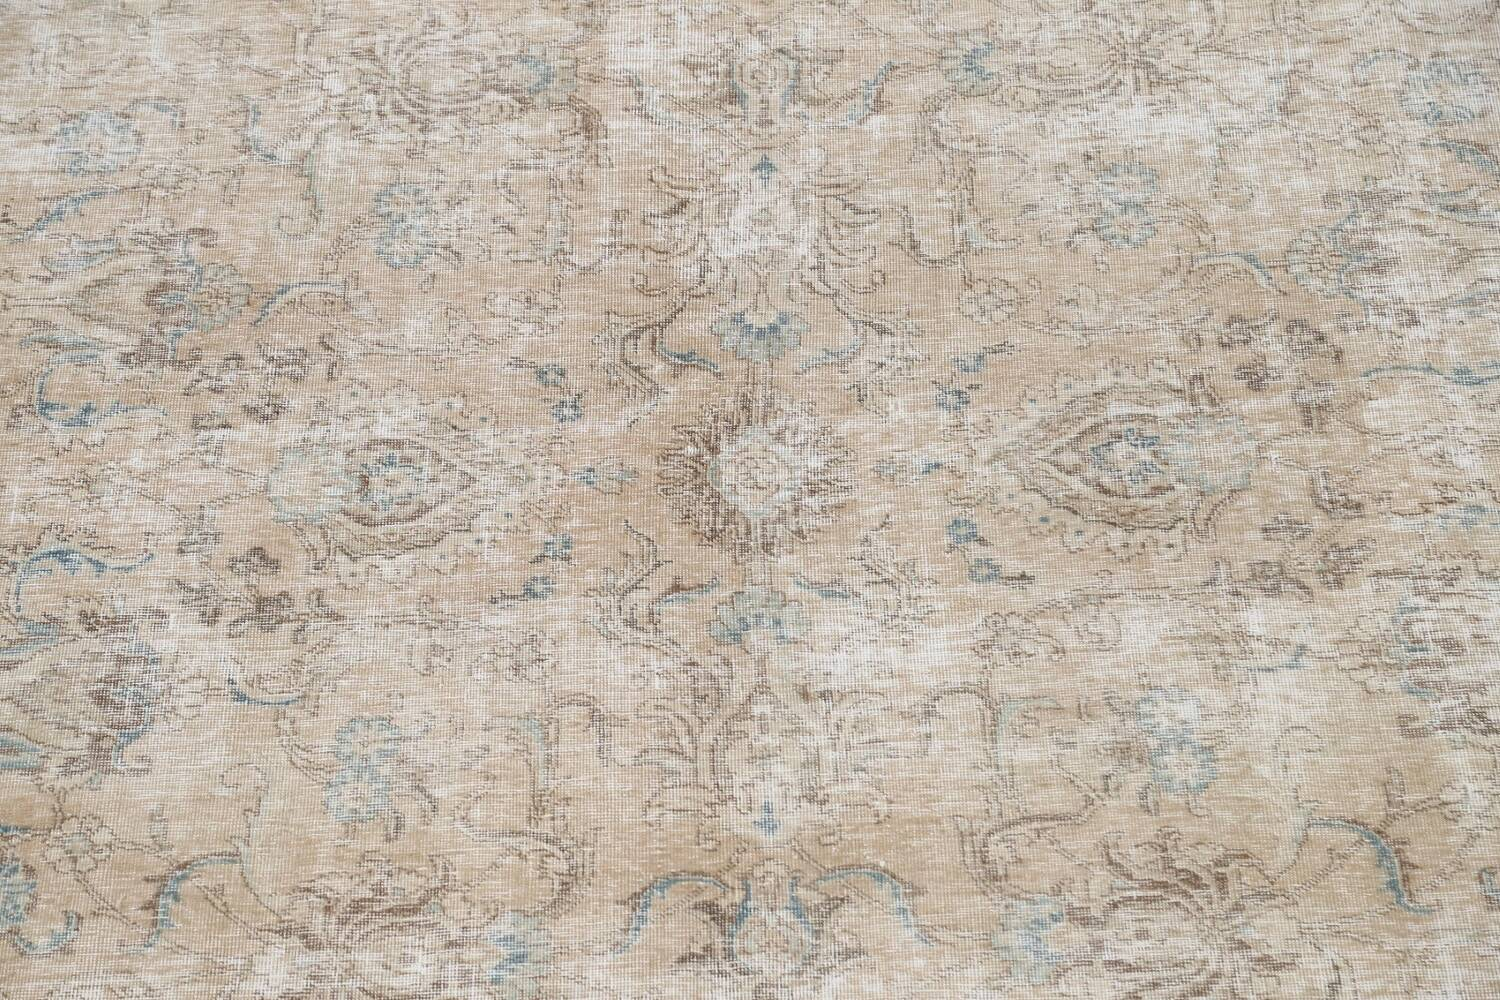 Muted Floral Tabriz Persian Area Rug 10x11 image 4